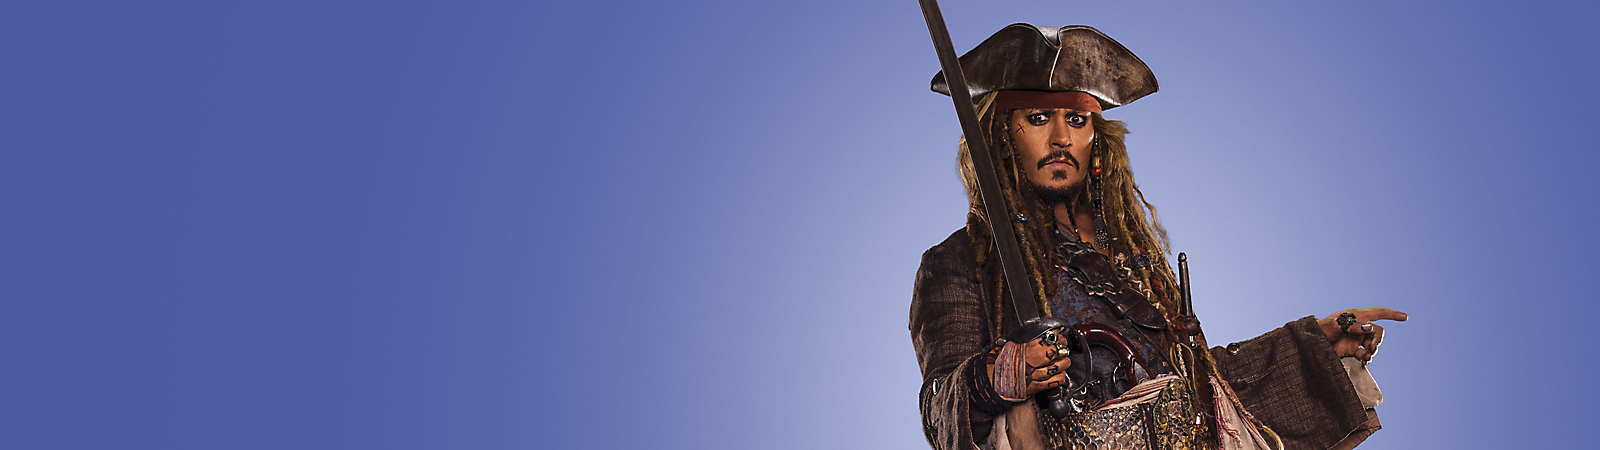 Background image of Captain Jack Sparrow